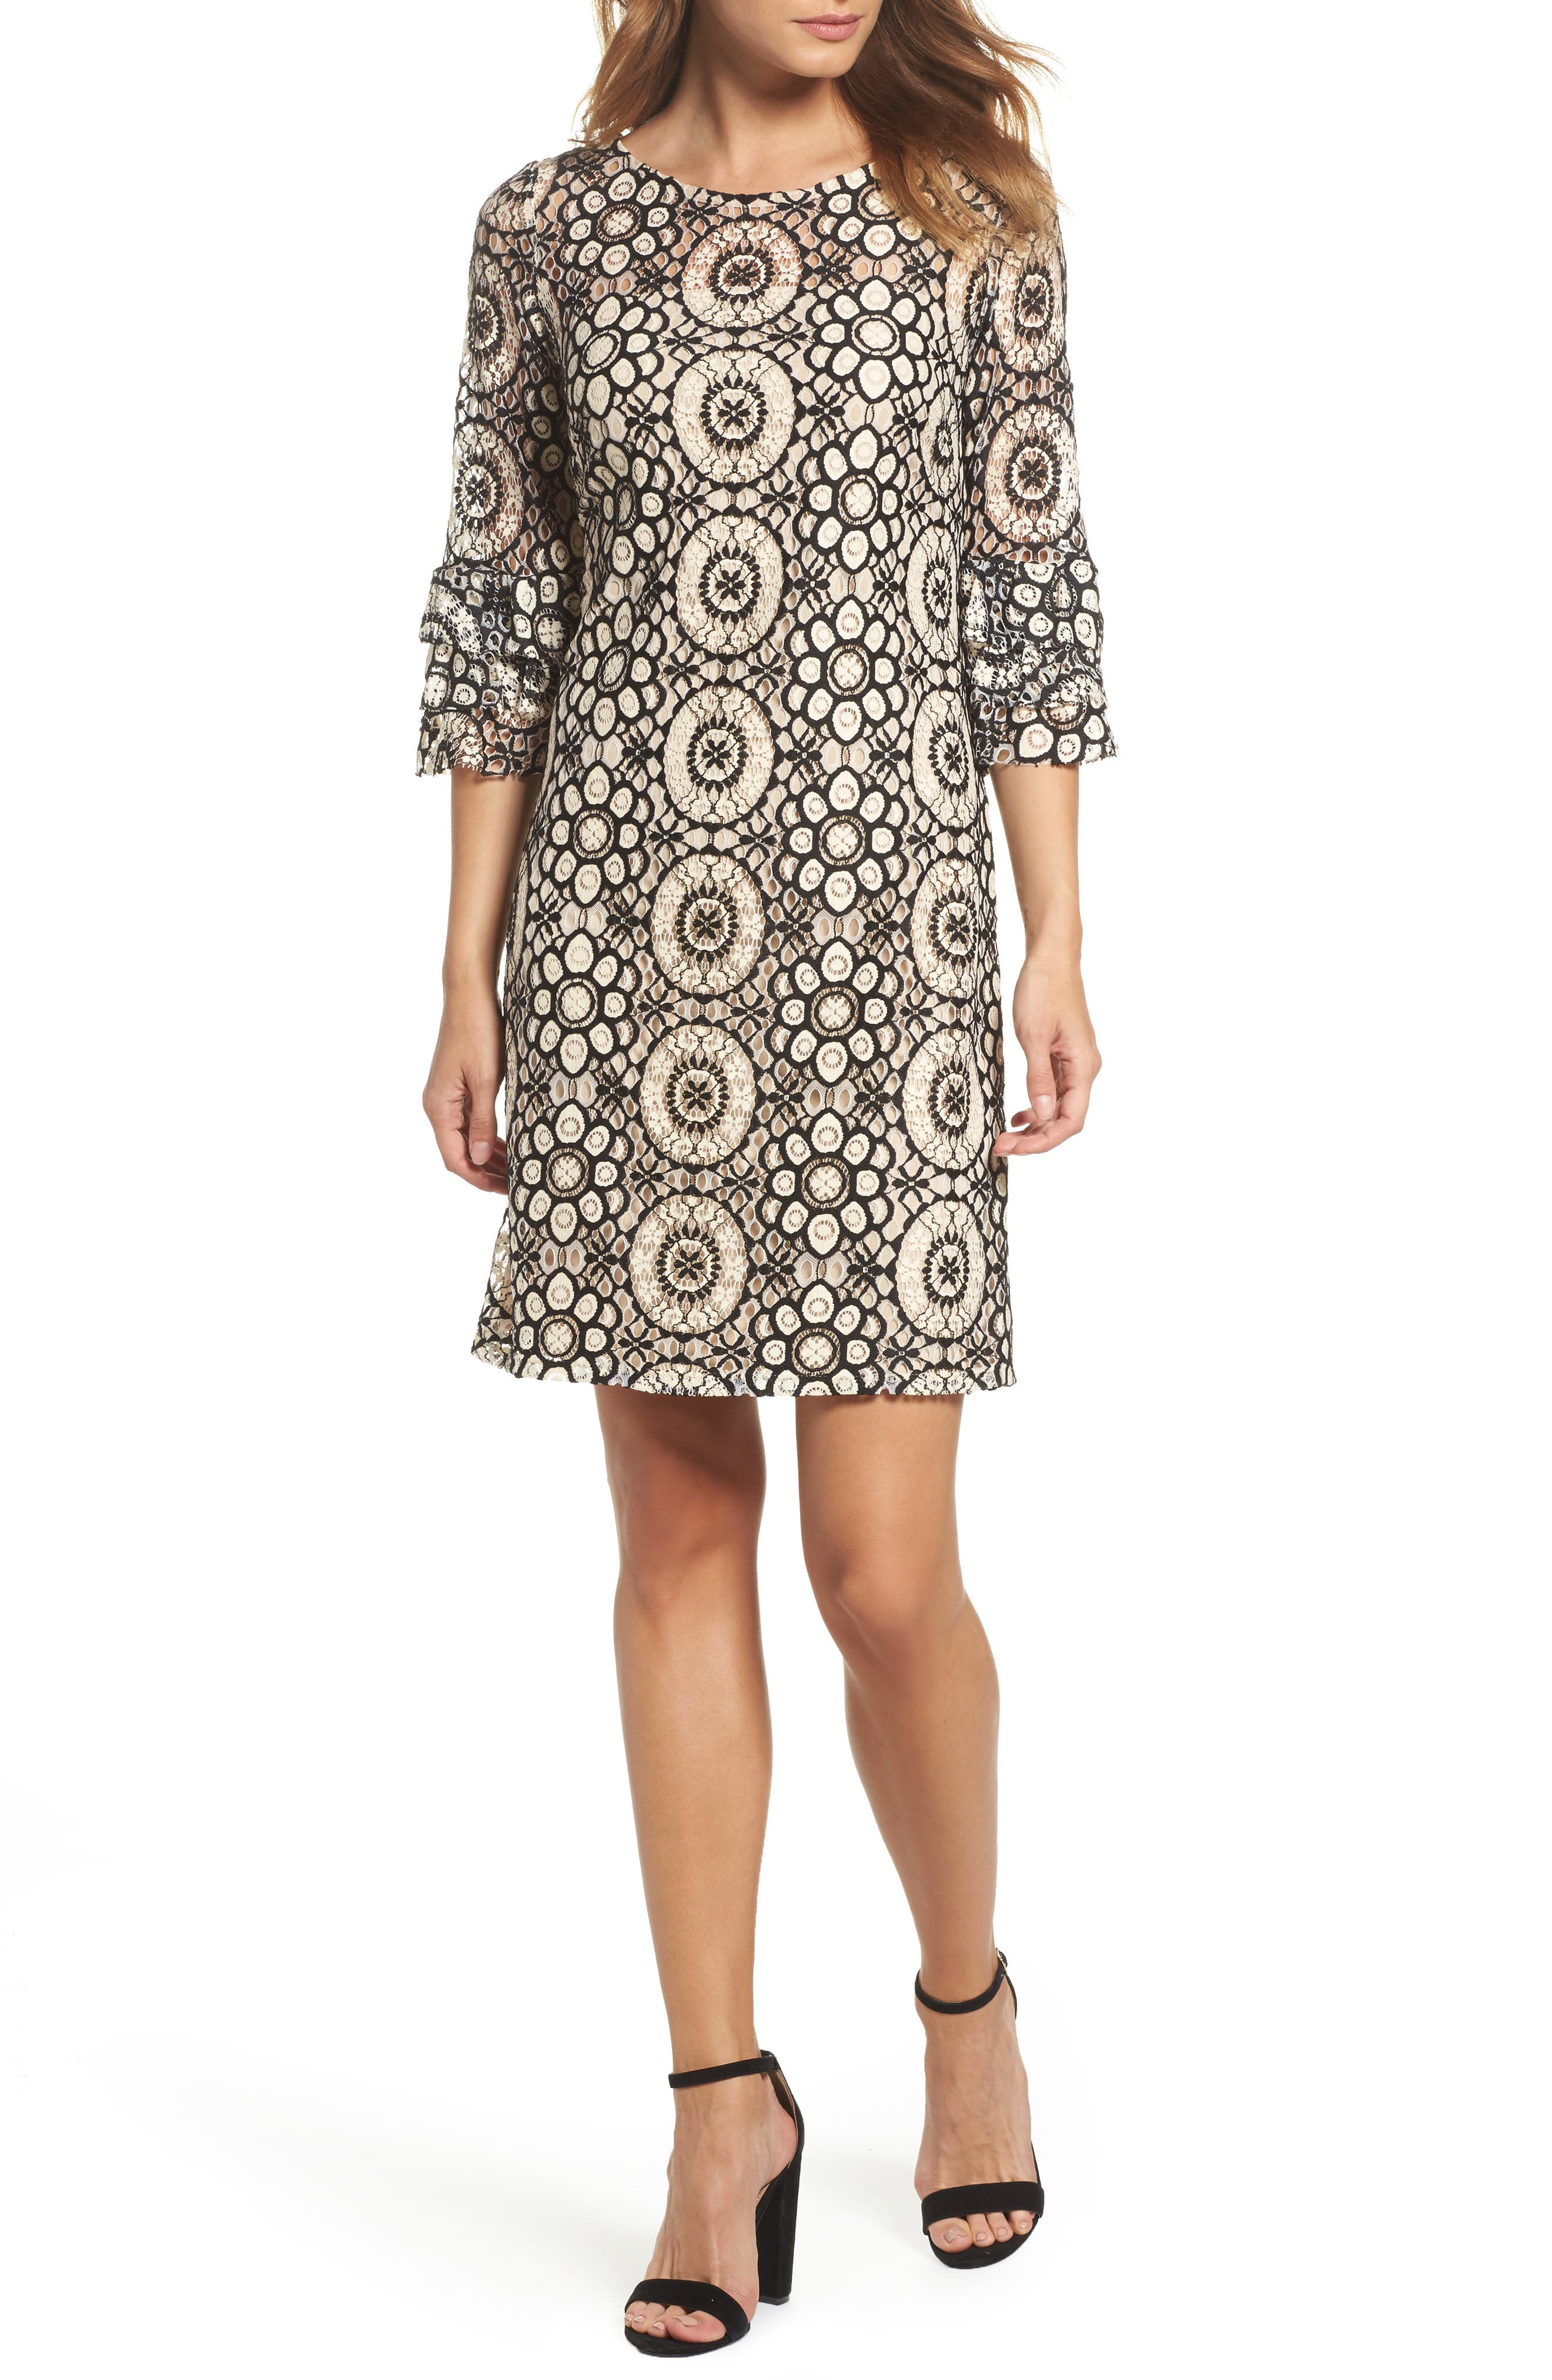 Tiered Sleeve Lace Shift Dress,                         Main,                         color, Cream/ Black